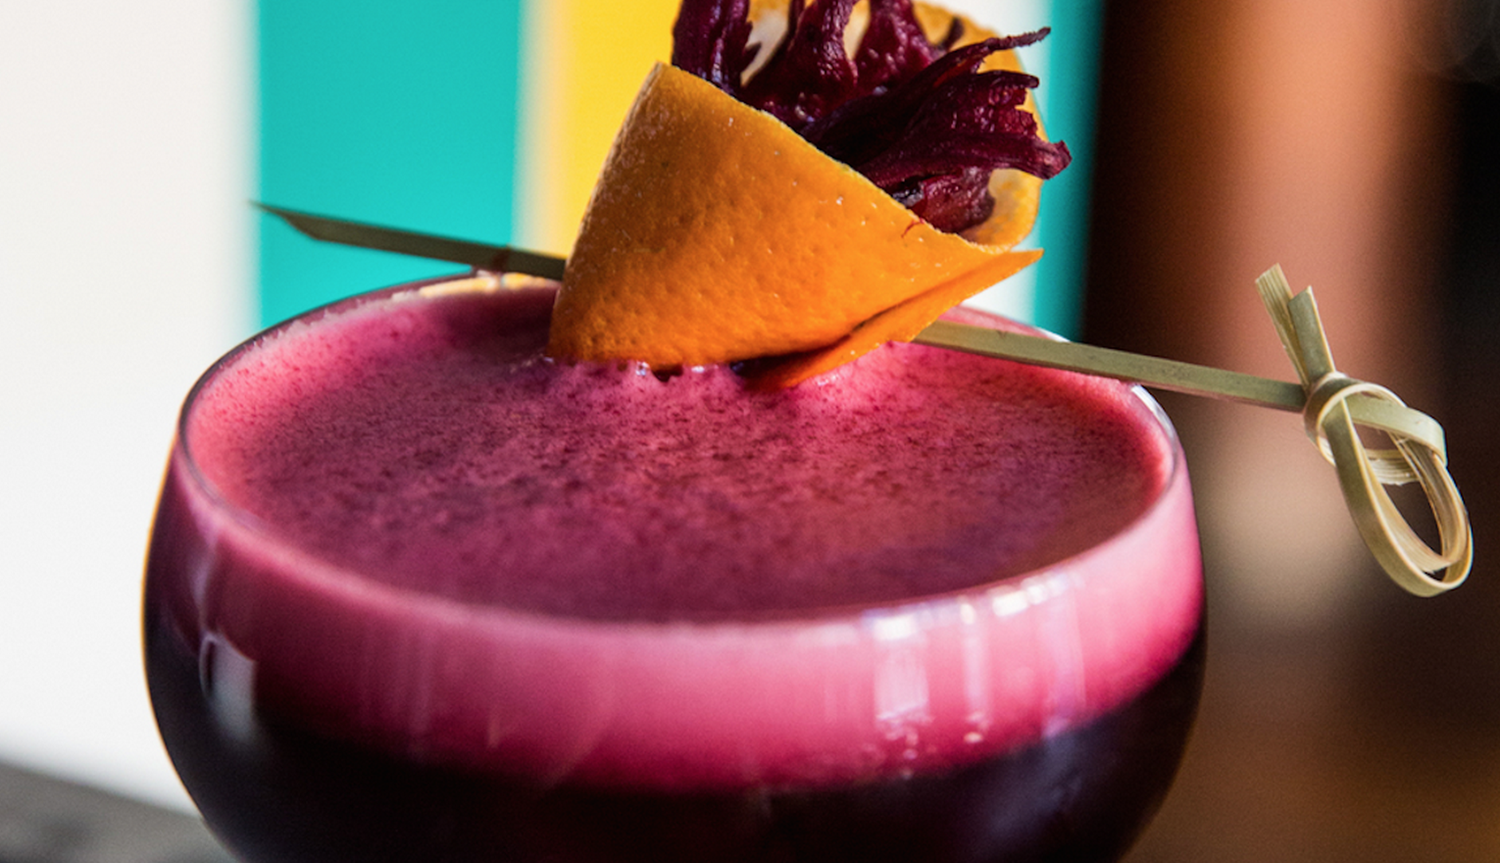 Close up of bright red-violet colored cocktail with an orange twist